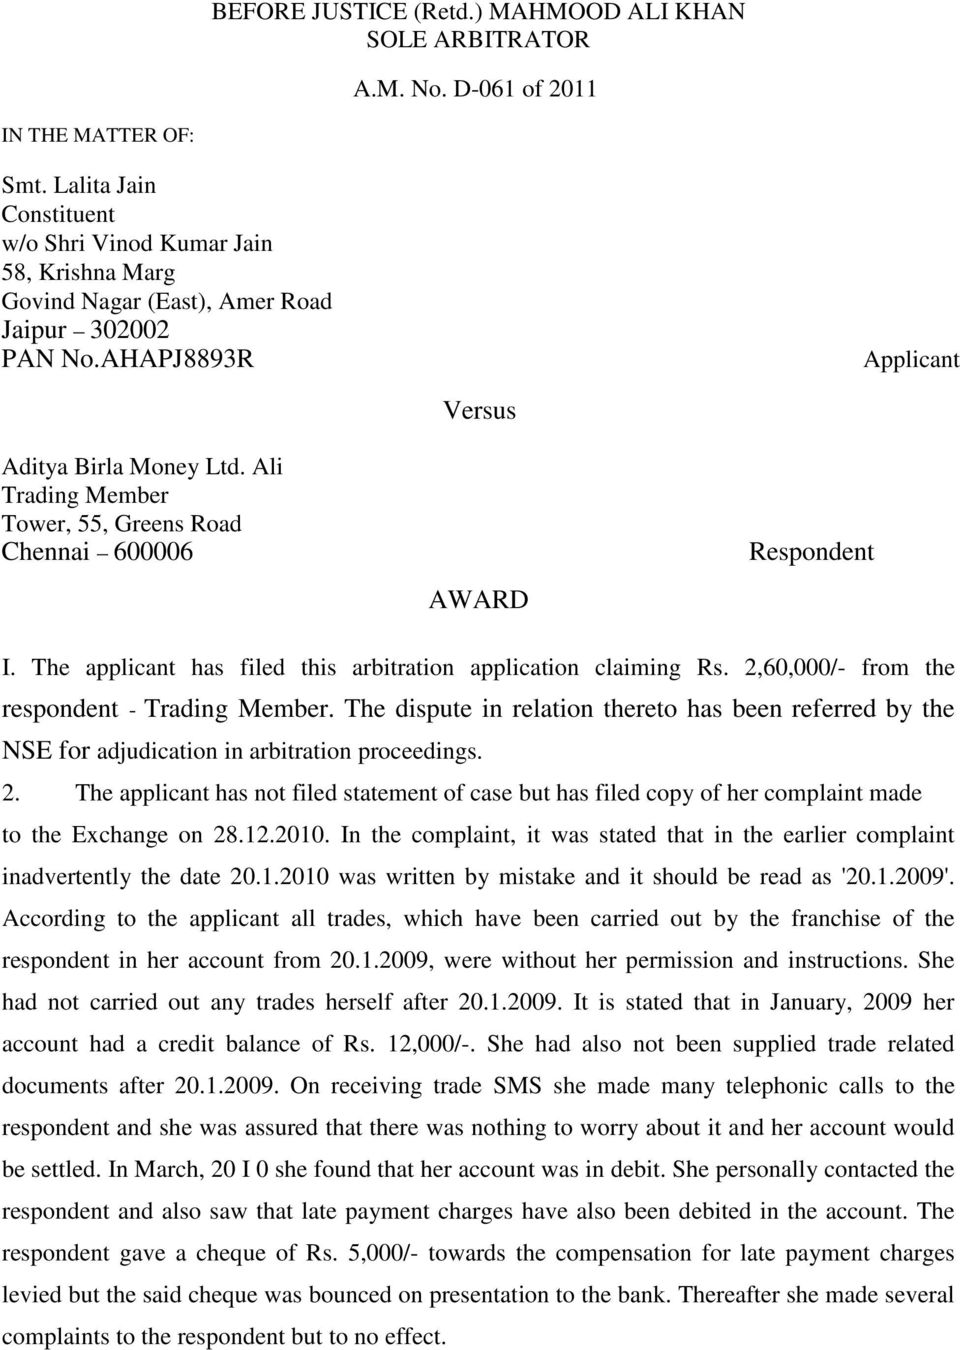 Ali Trading Member Tower, 55, Greens Road Chennai 600006 Versus AWARD Respondent I. The applicant has filed this arbitration application claiming Rs. 2,60,000/- from the respondent - Trading Member.